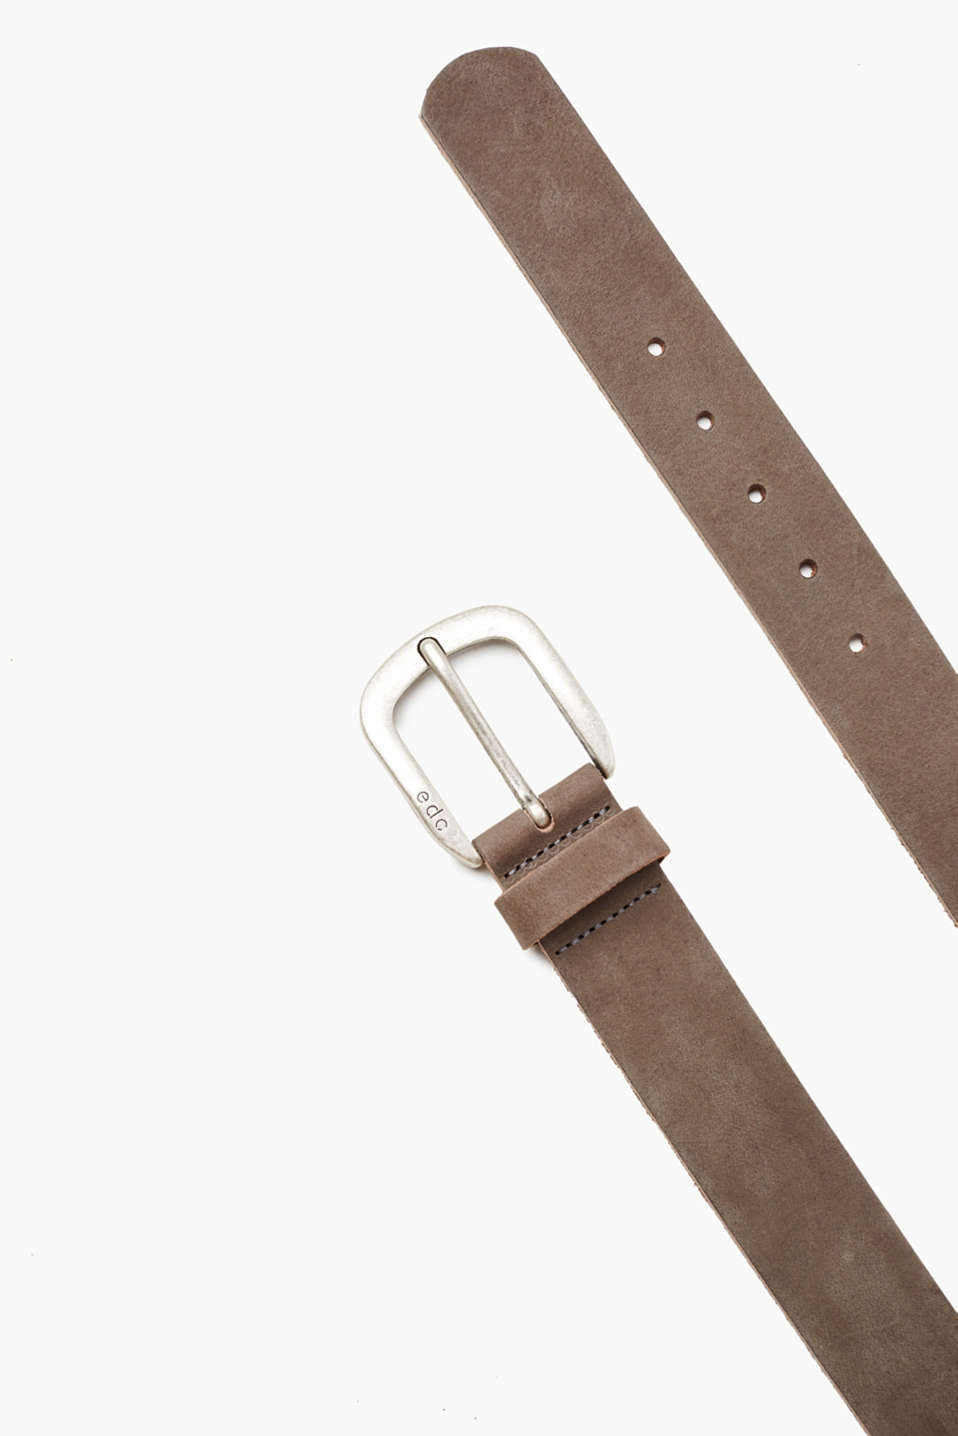 In robust buffalo leather: belt with a distinctive metal buckle with vintage finish